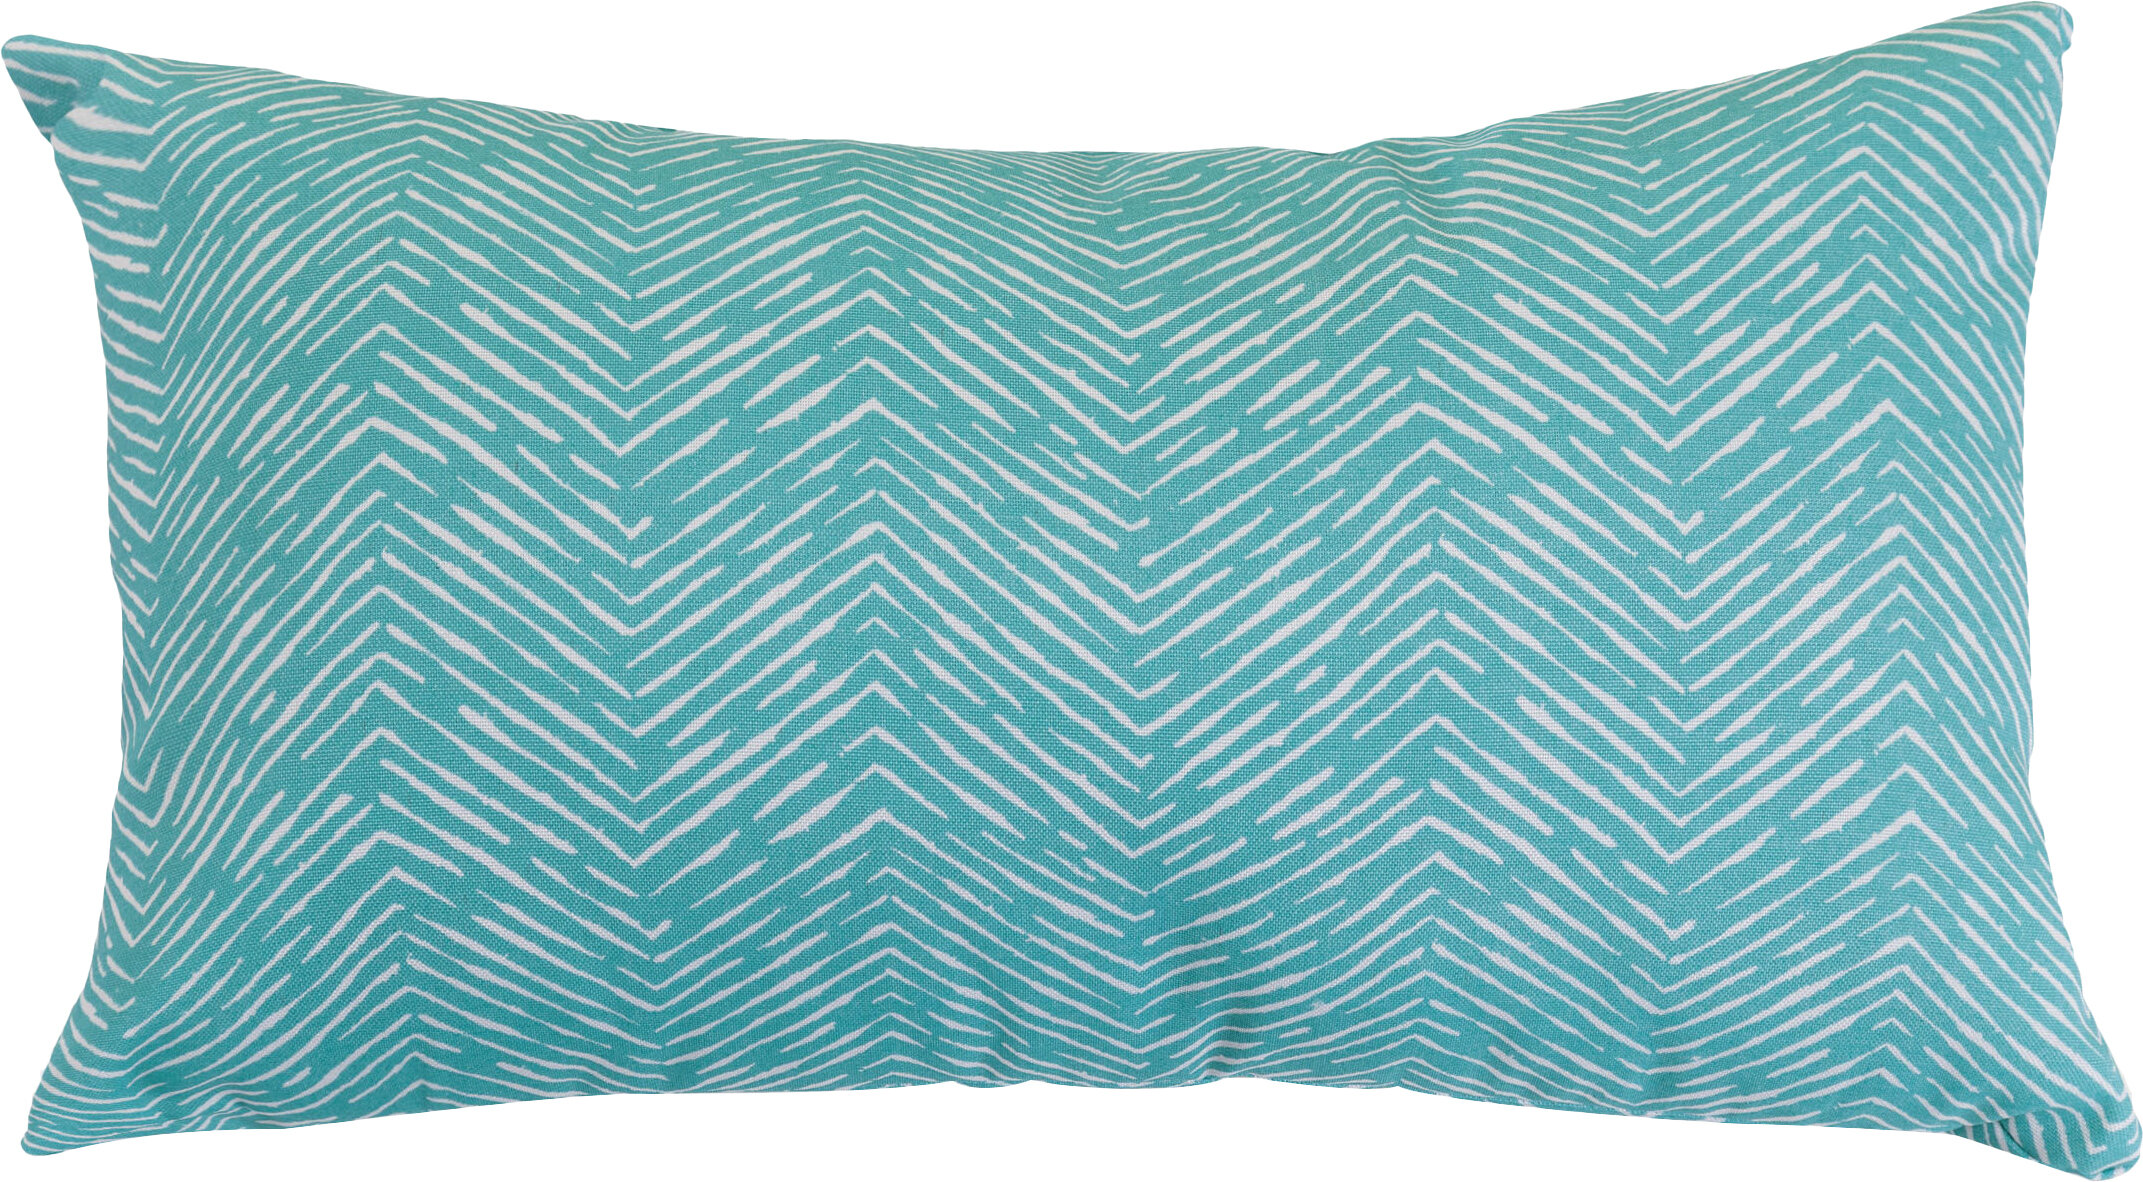 liora pin manne pillow indoor ocean trans pillows lumbar threads outdoor ombre throw imports white